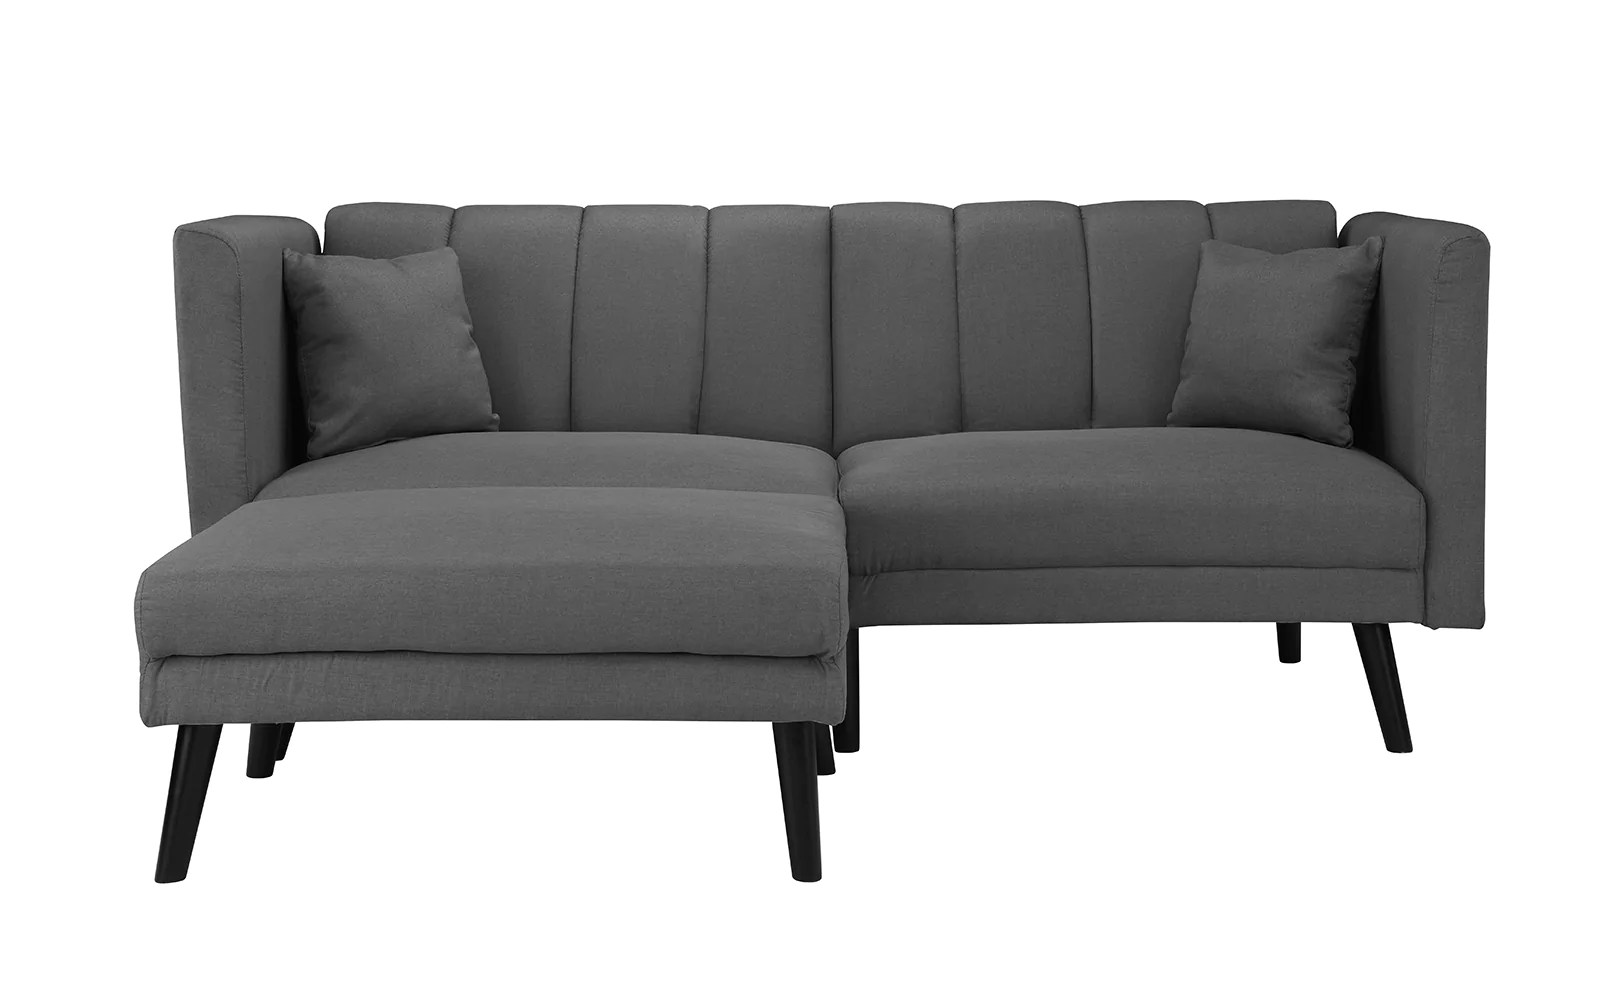 Esme Contemporary Loveseat Sleeper Futon With Chaise Lounge